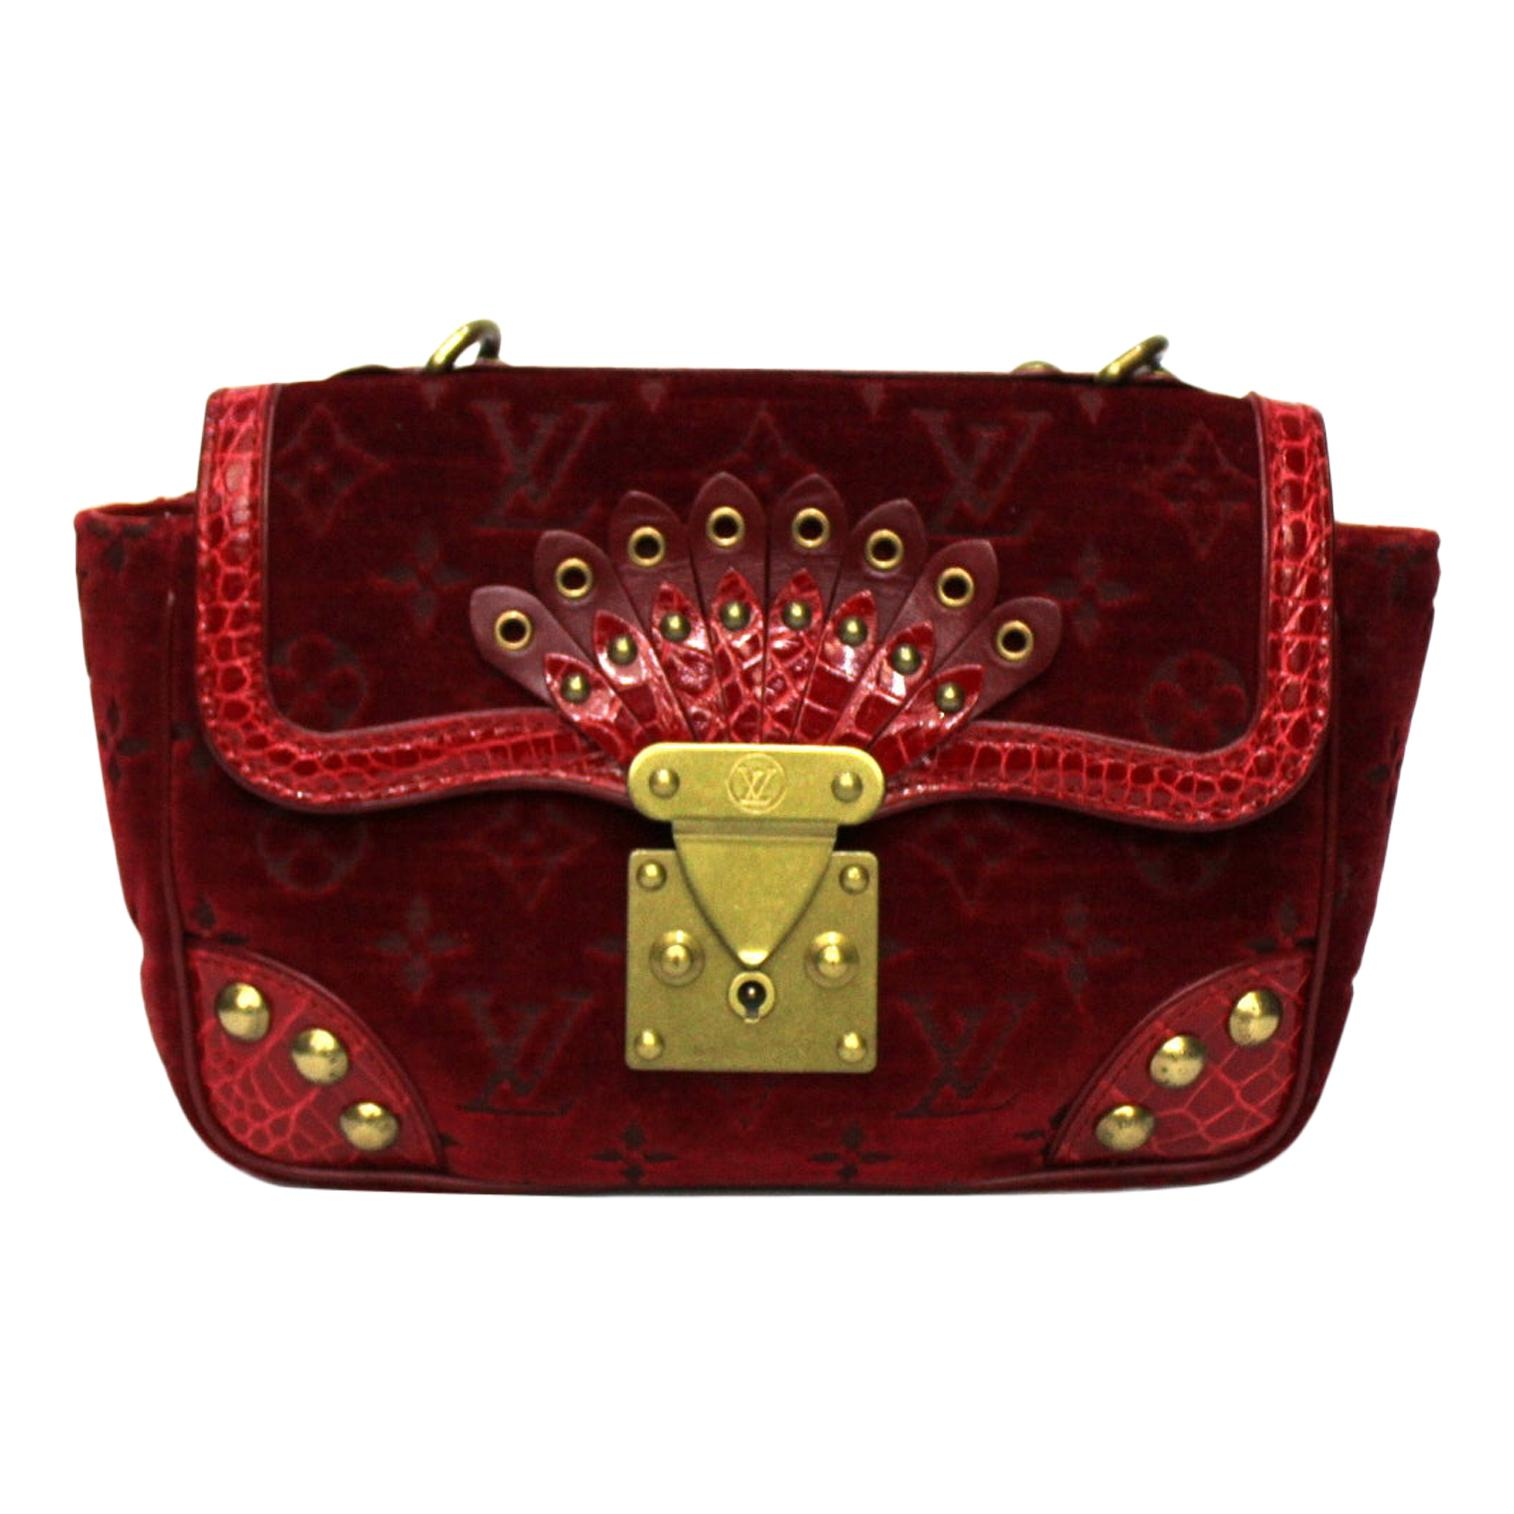 Louis Vuitton Red Leather Irvine Bag